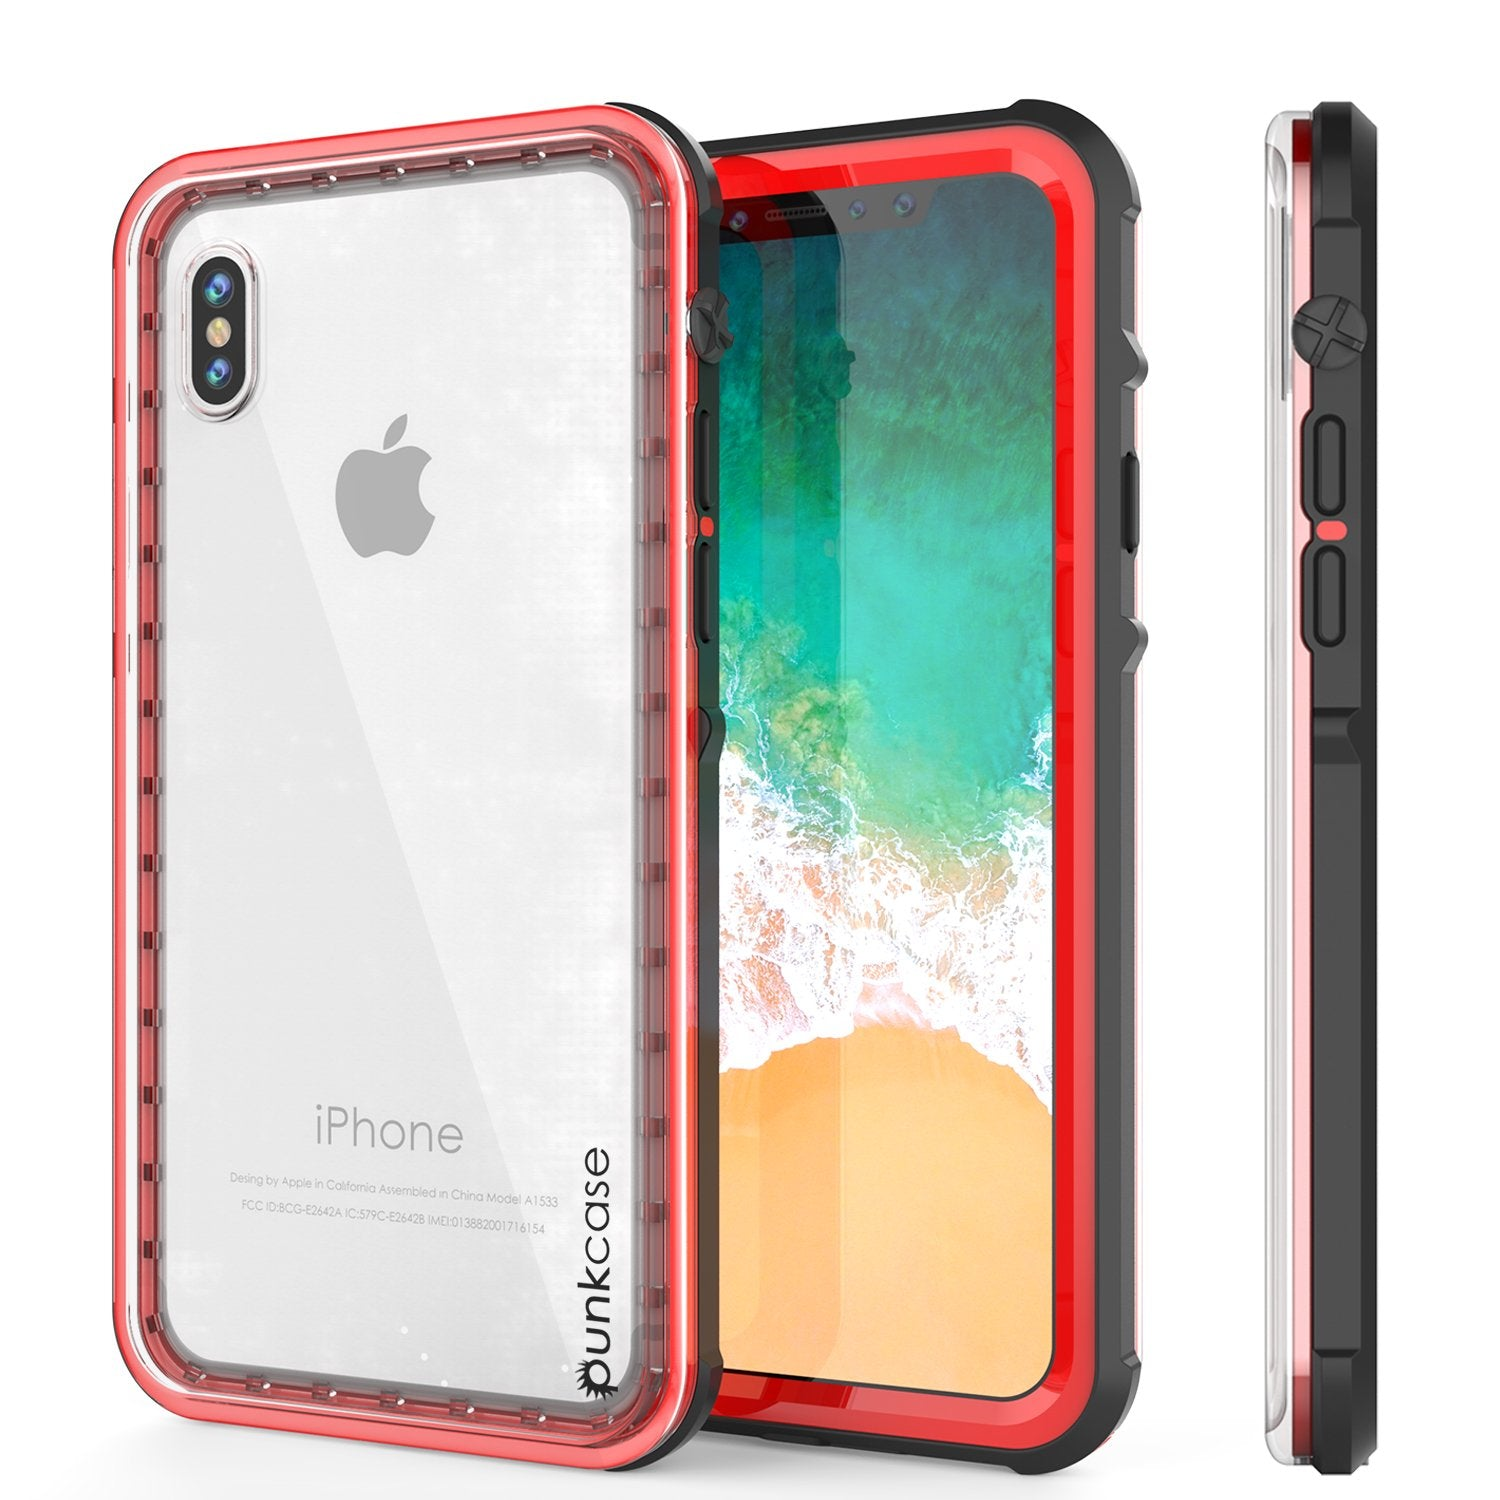 iPhone X Case, PUNKCase [CRYSTAL SERIES] Protective IP68 Certified Cover W/ Attached Screen Protector [RED]